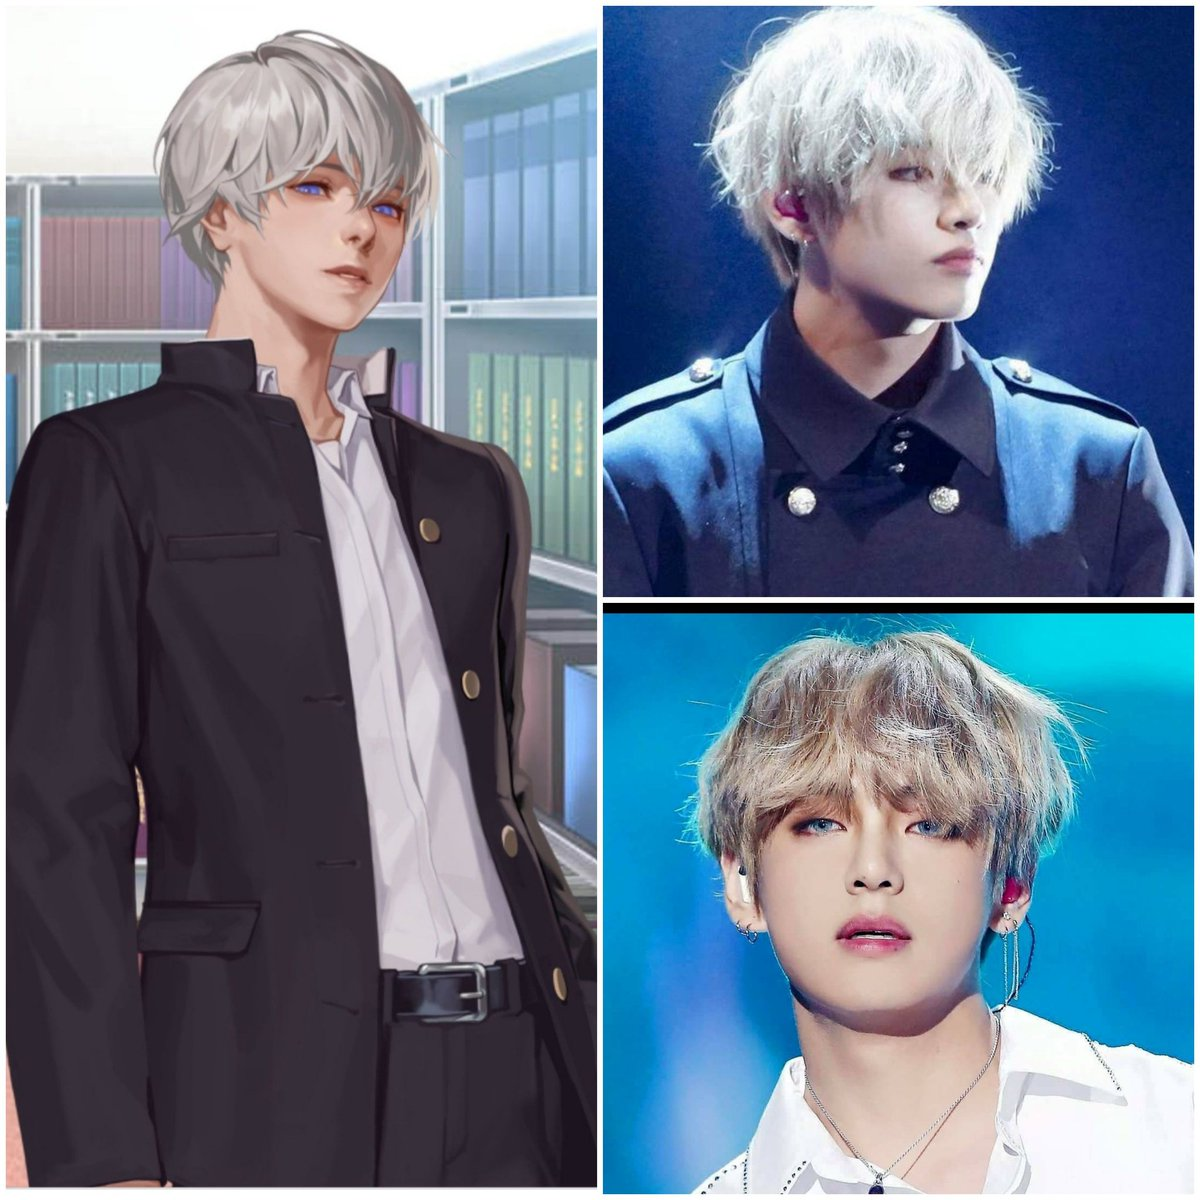 Does Subaru was inspired by Taehyung visual? #TAEHYUNG #TaehyungTrends #TaehyungFashion #TaehyungWeLoveYou #TaehyungEdit #taehyunglovely #TaehyungTheMostPrecious https://t.co/ZmA9Y68tuP